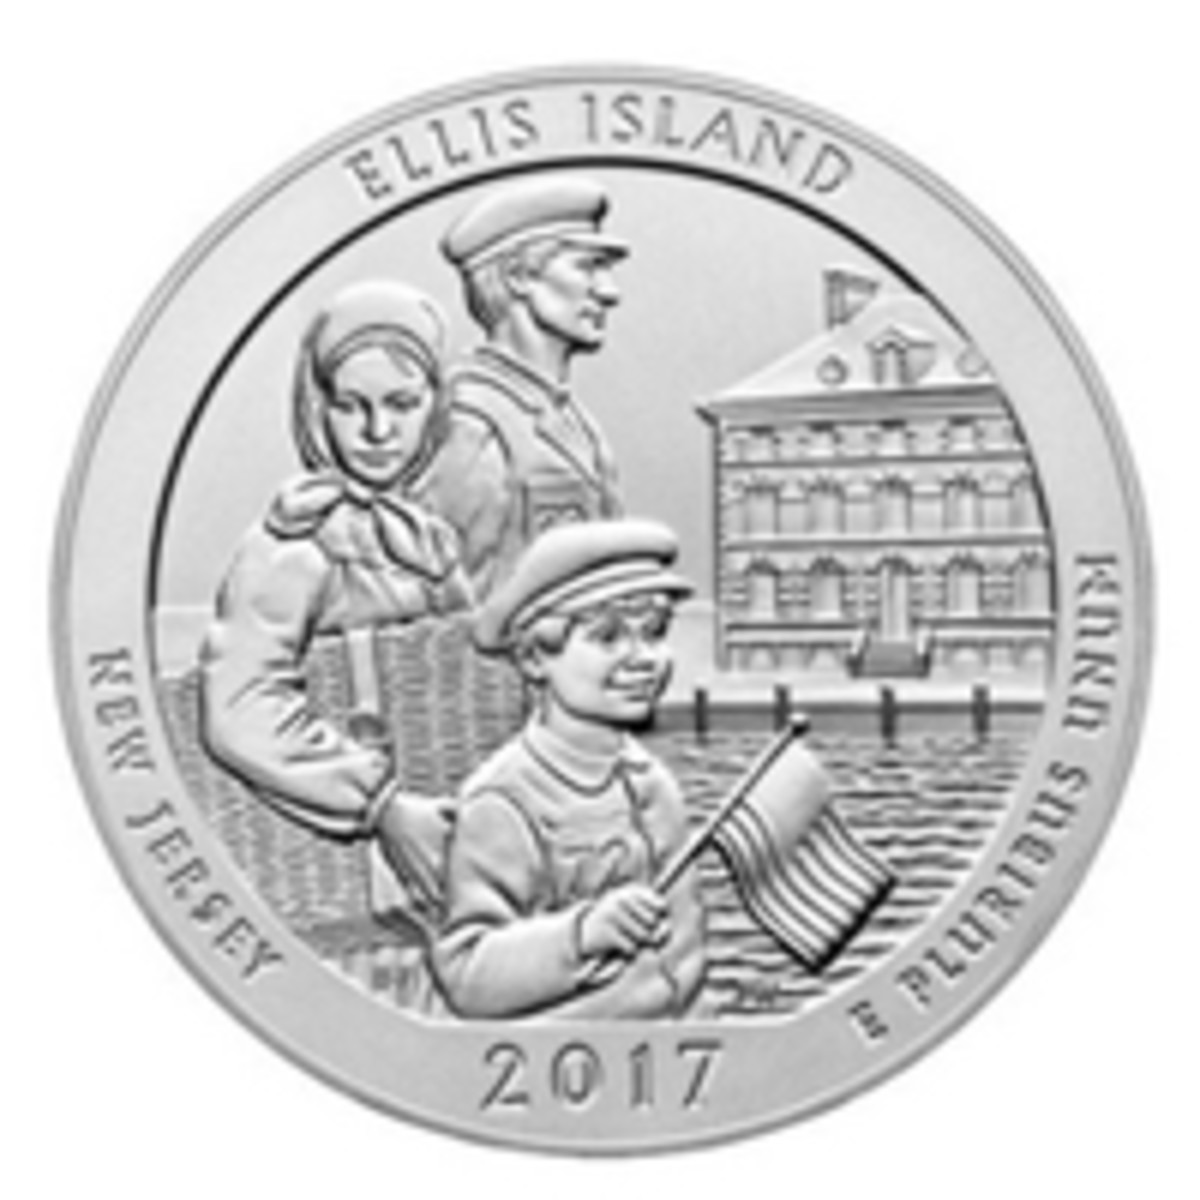 Available at the Long Beach Expo scheduled for Sept. 7-9 will be this five-ounce silver coin honoring Ellis Island.